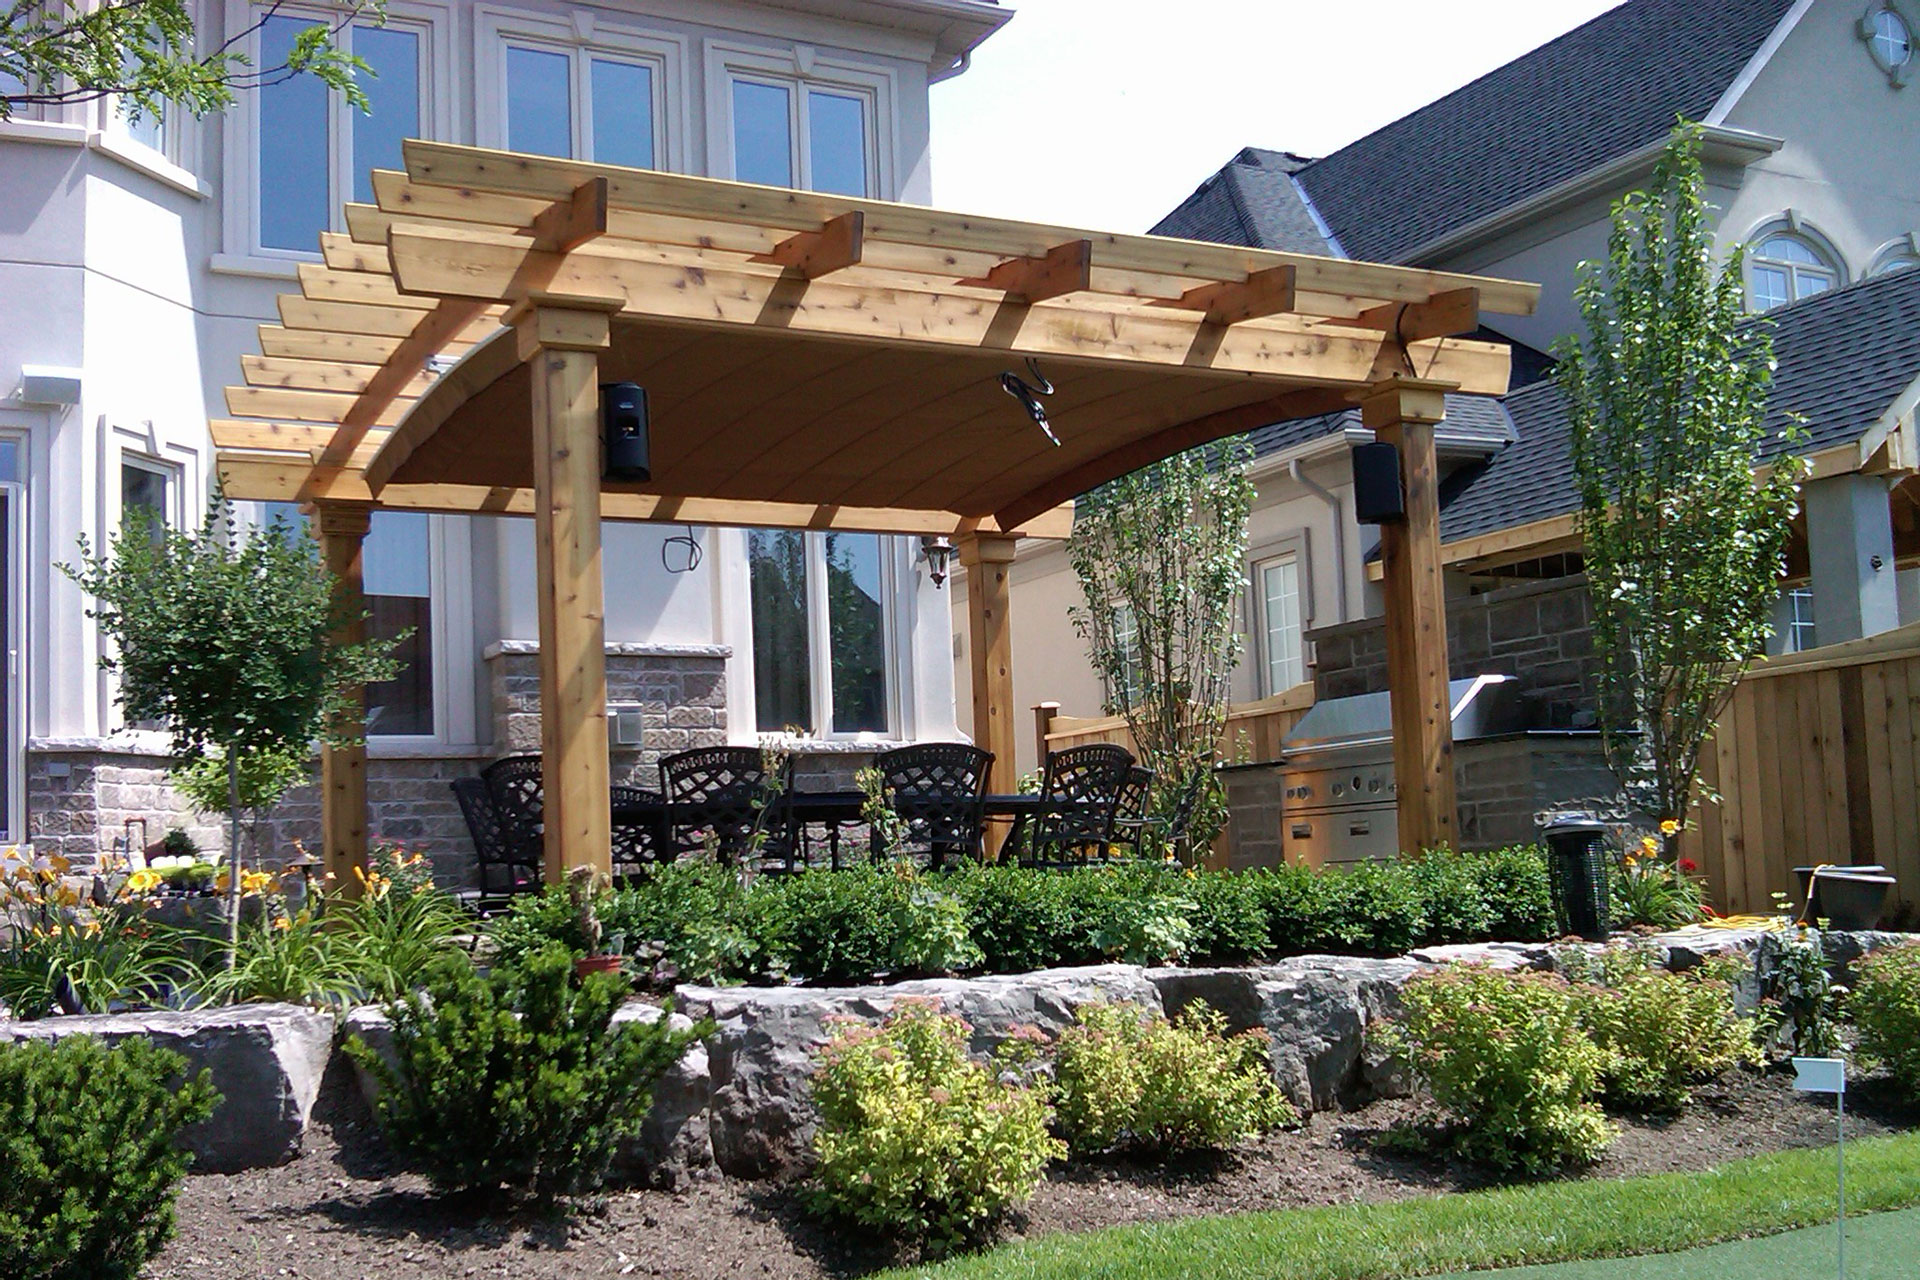 decorative pergola shade canopy. Black Bedroom Furniture Sets. Home Design Ideas